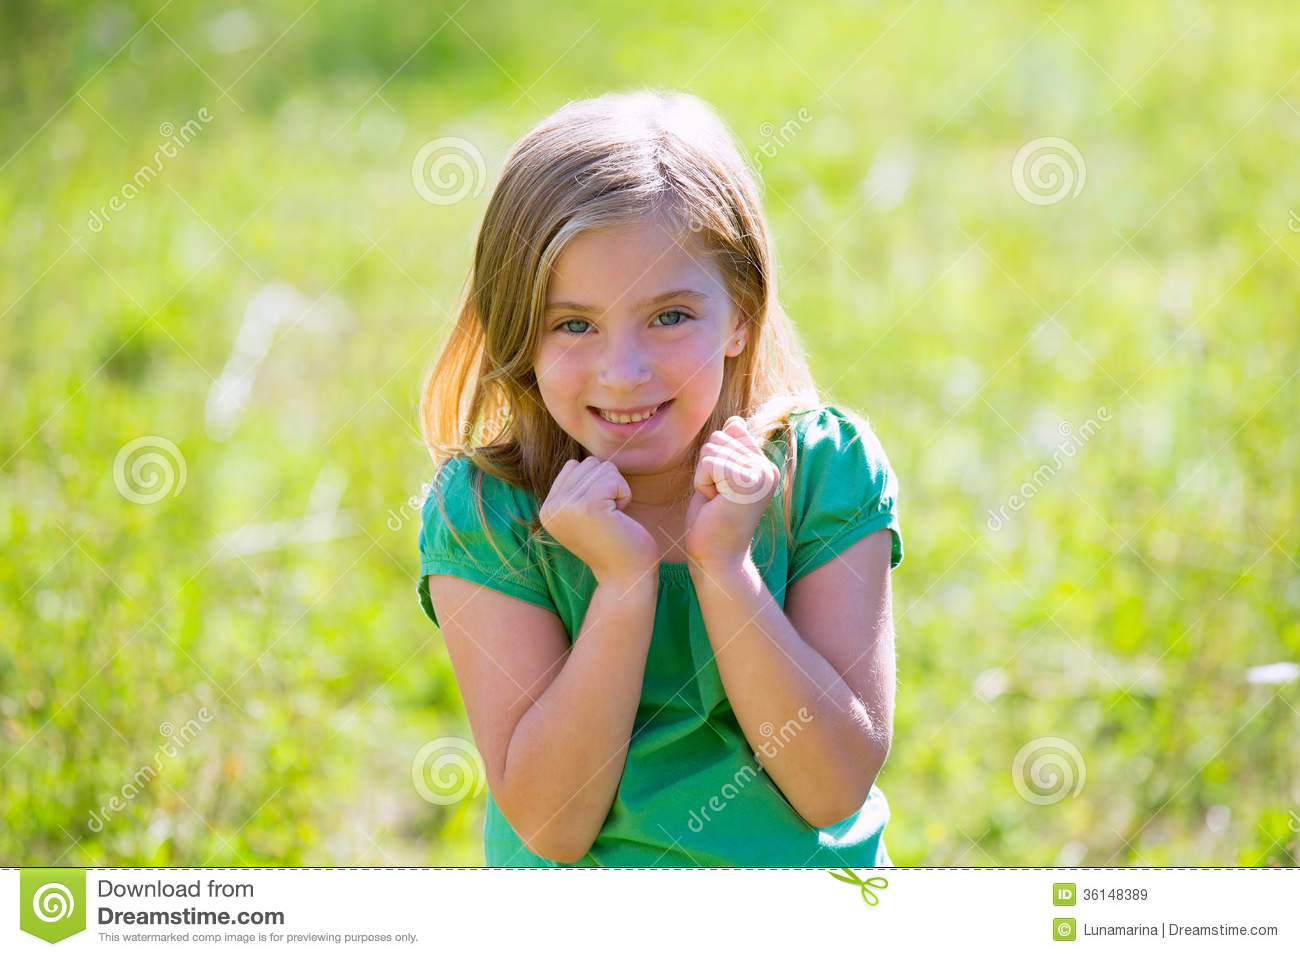 blond kid girl excited gesture expression in green outdoor stock